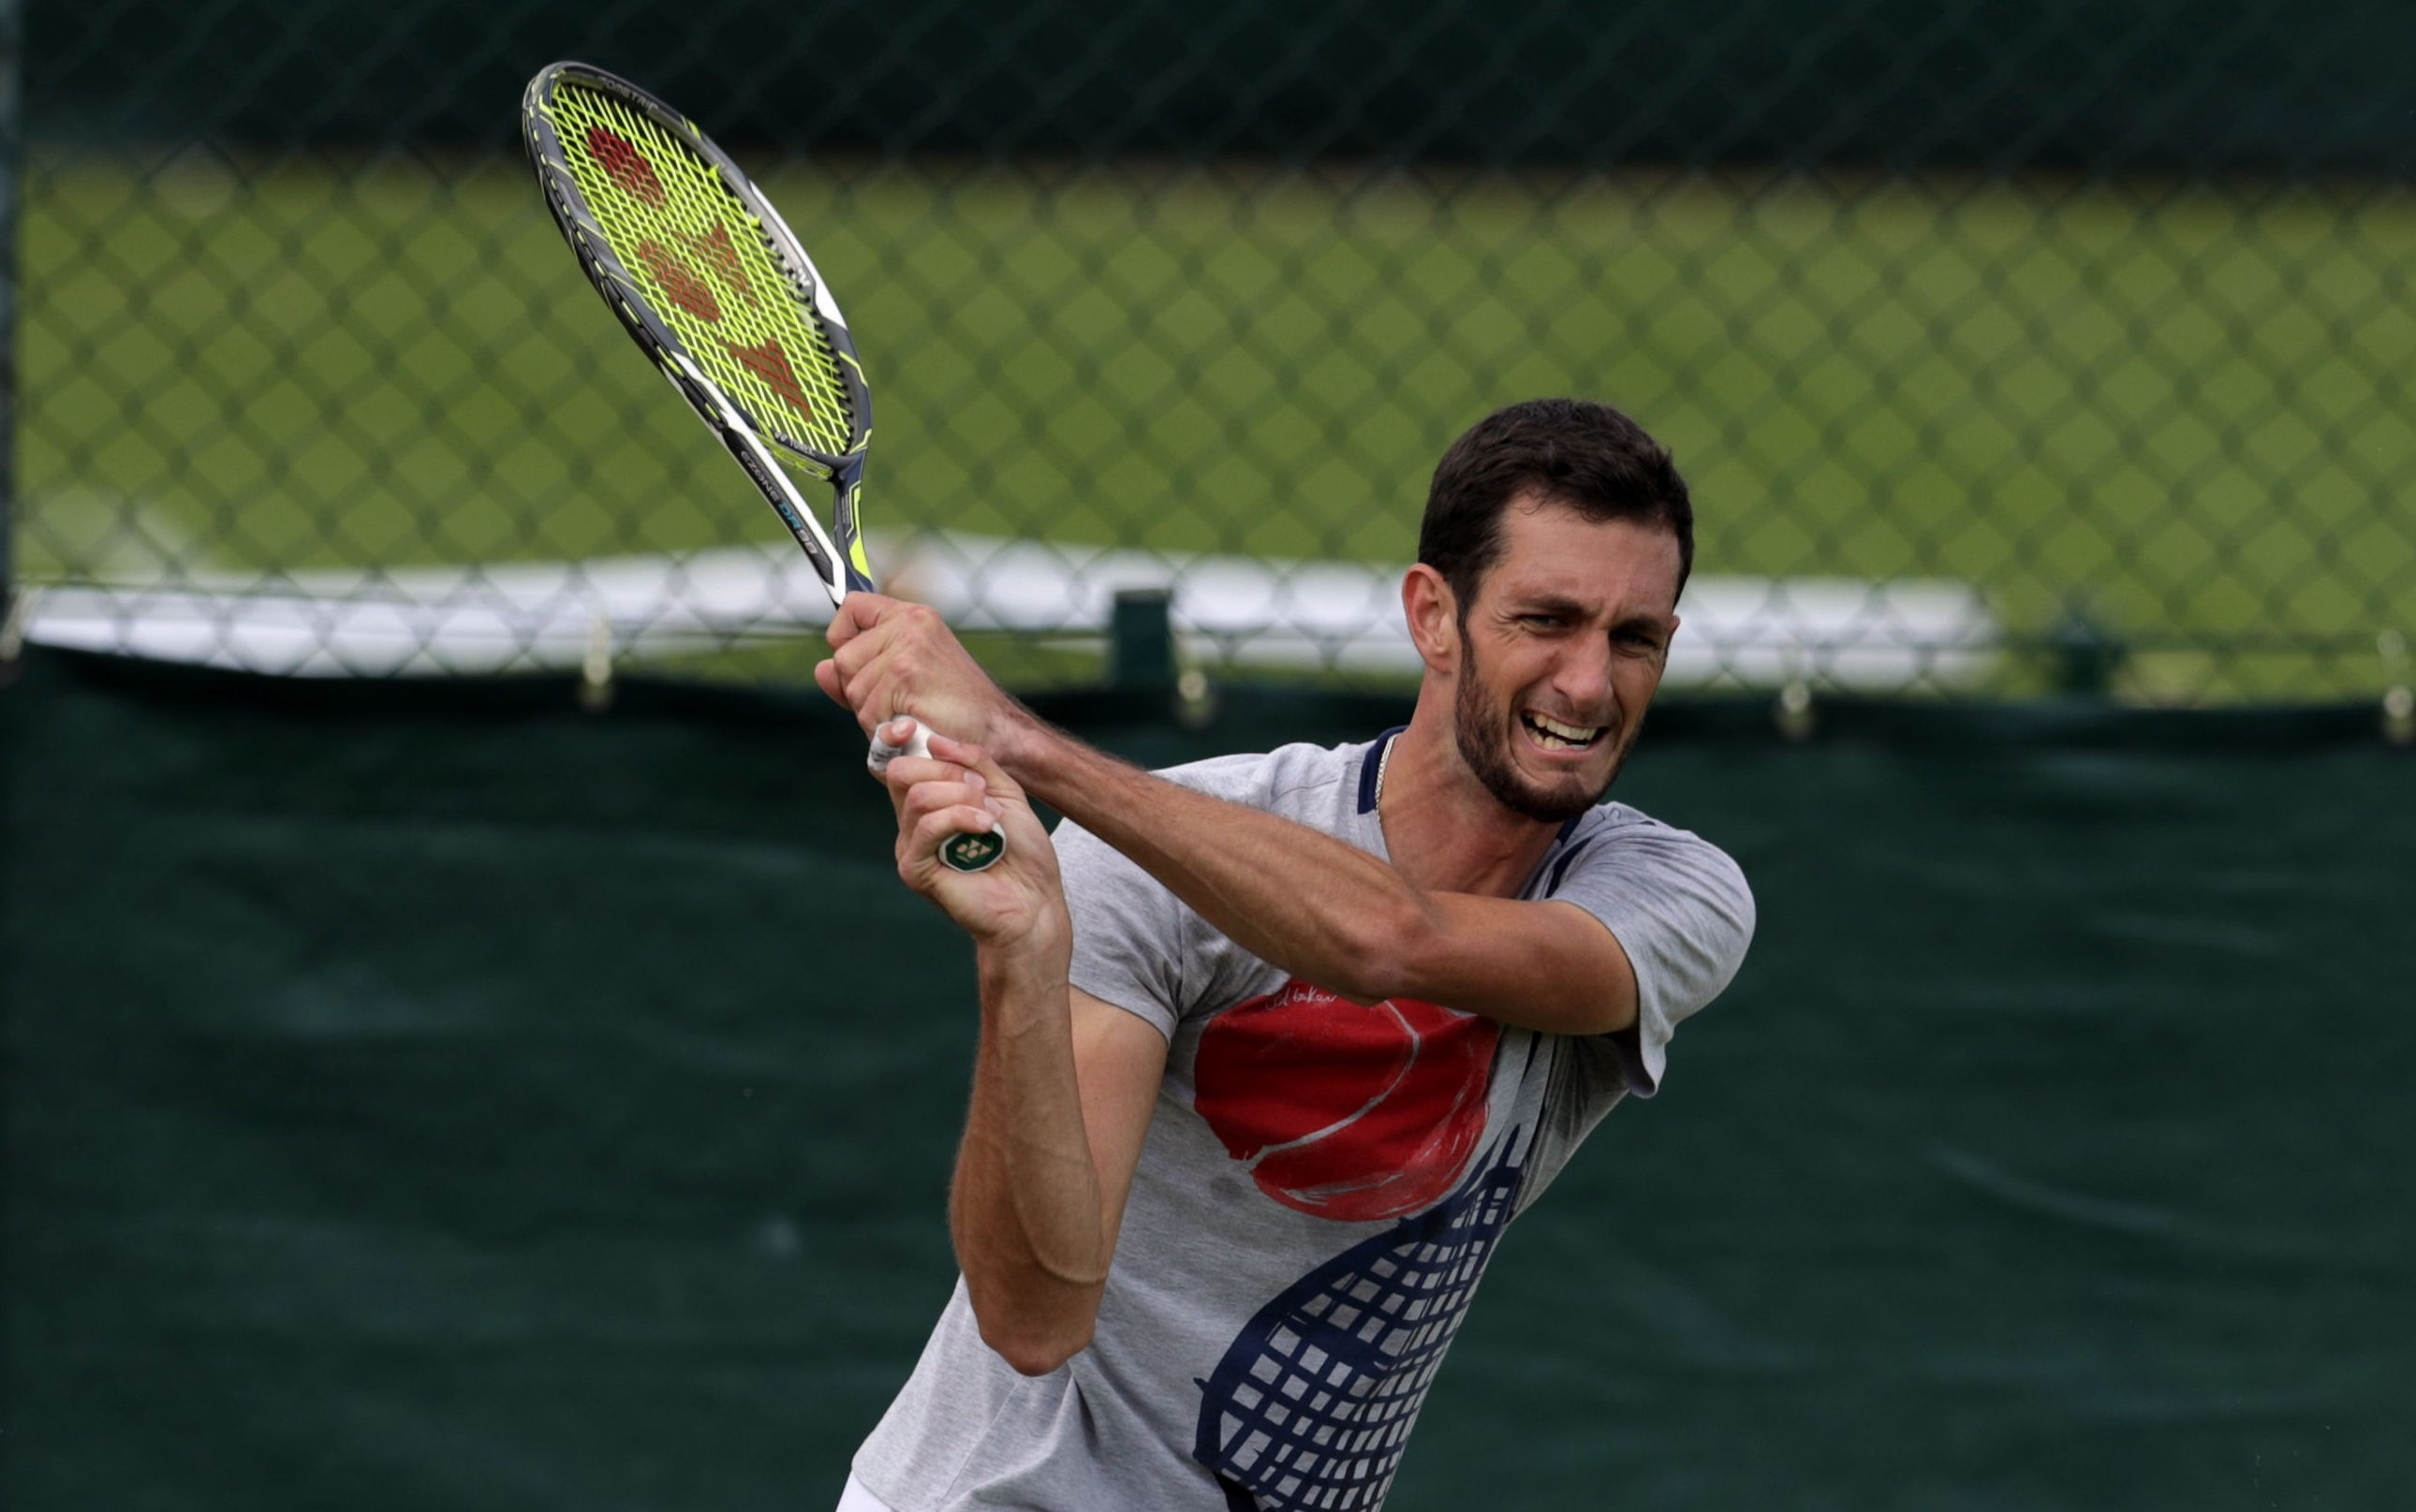 James Ward practising ahead of Wimbledon.